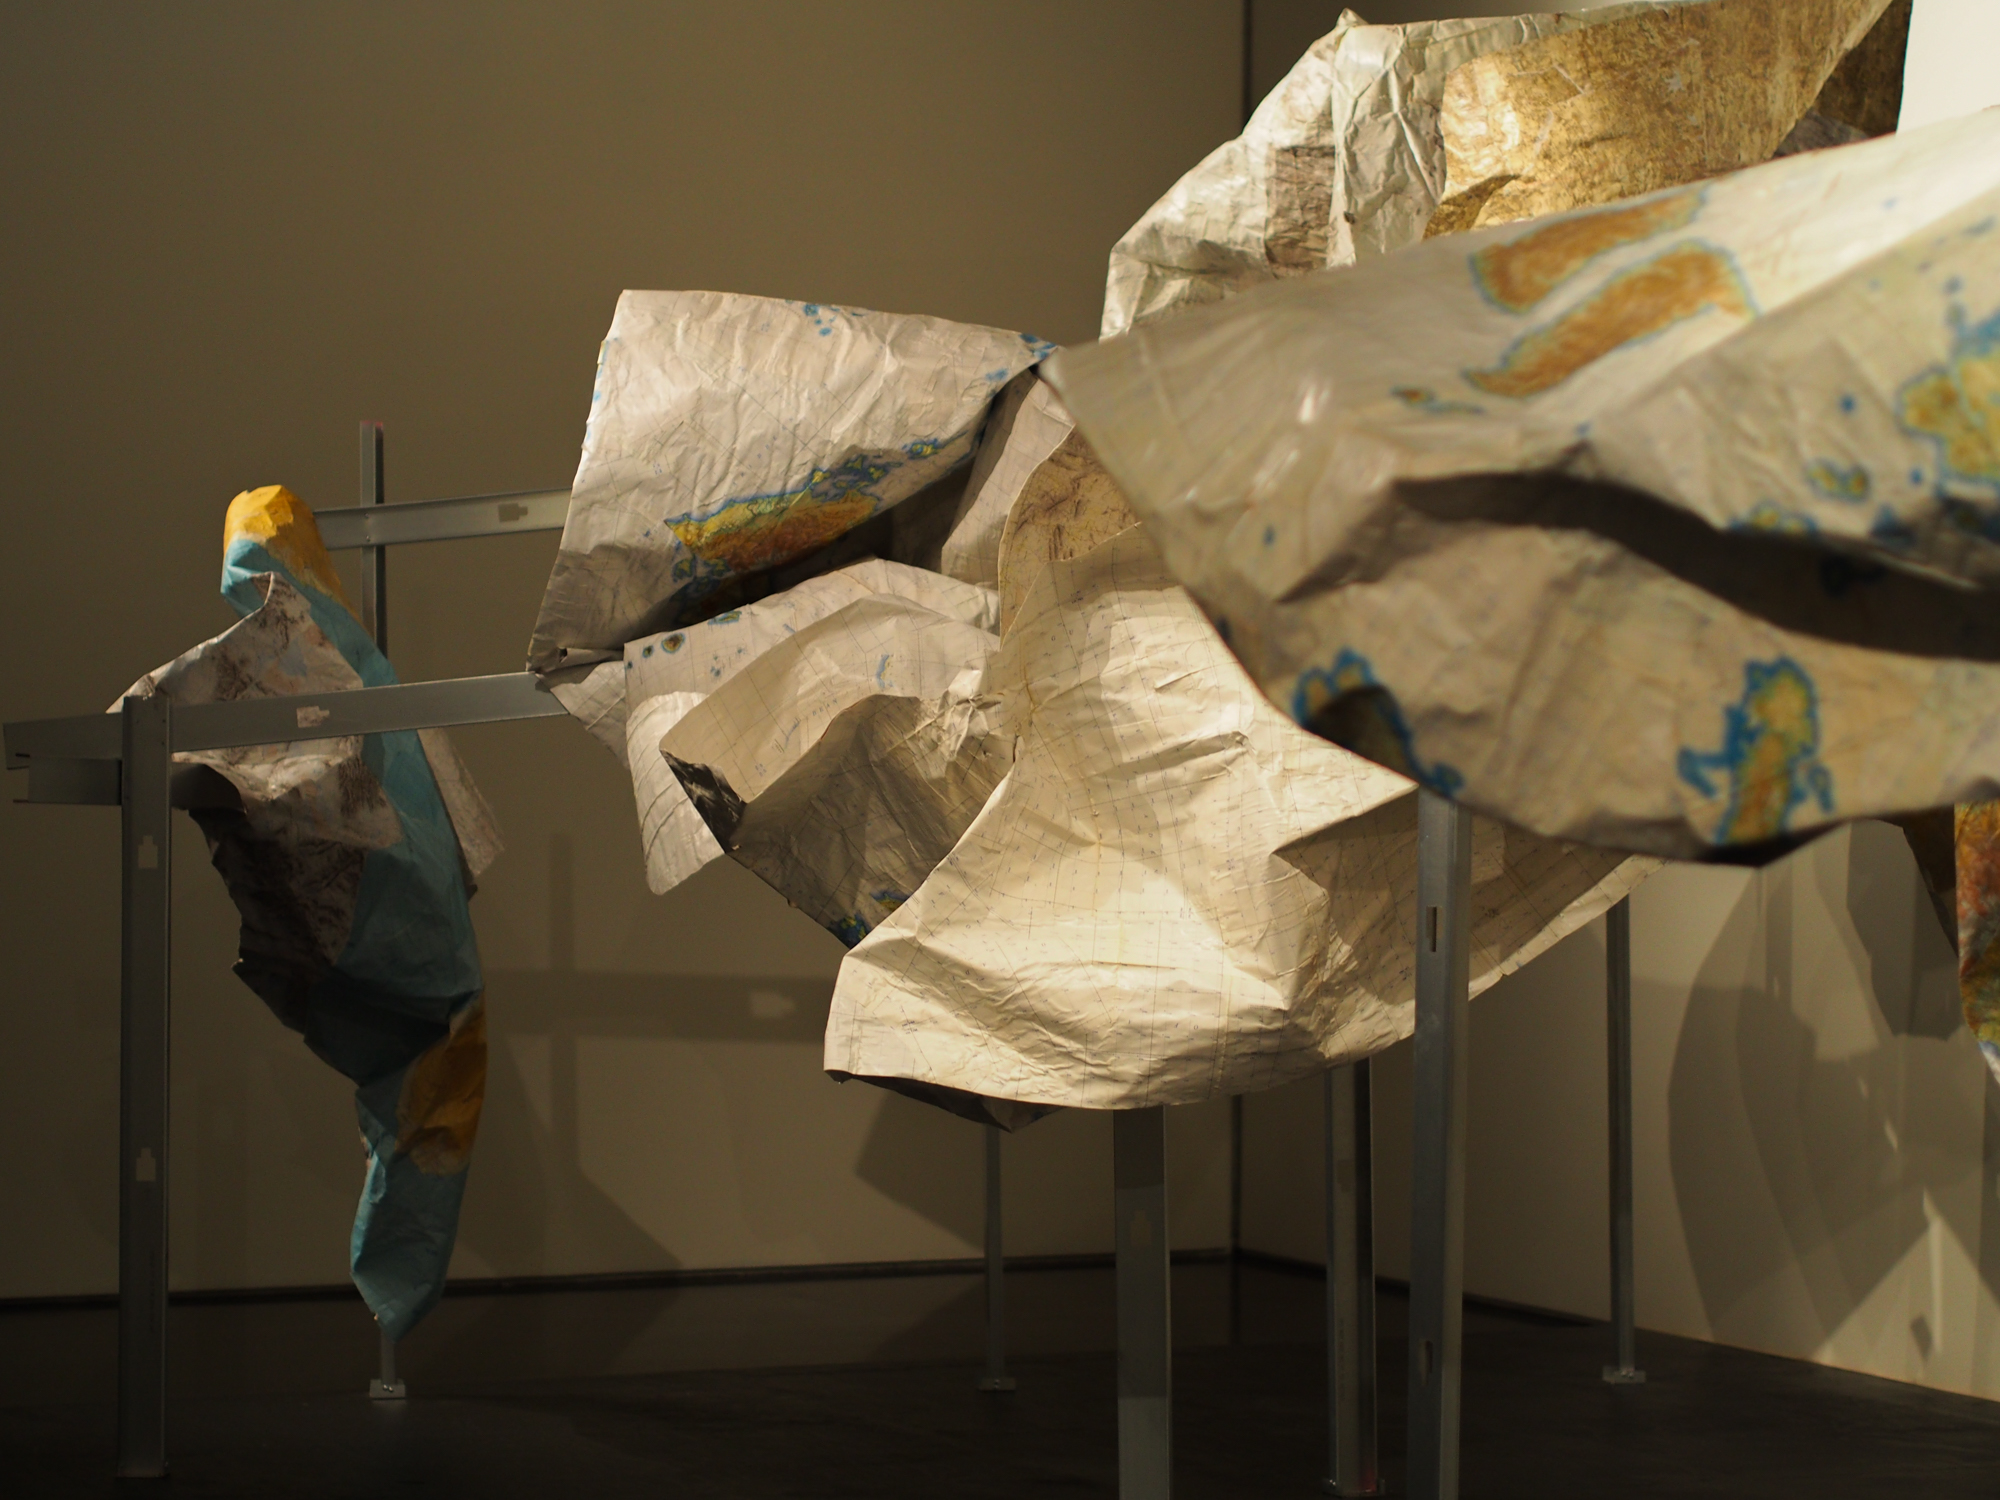 """""""Subsistence,"""" a sculpture by Marek Ranis from old military maps suspended on metal fish racks, part of the Anchorage Museum's """"The View From Up Here"""" exhibit. (Photo Zachariah Hughes/Alaska Public Media)"""